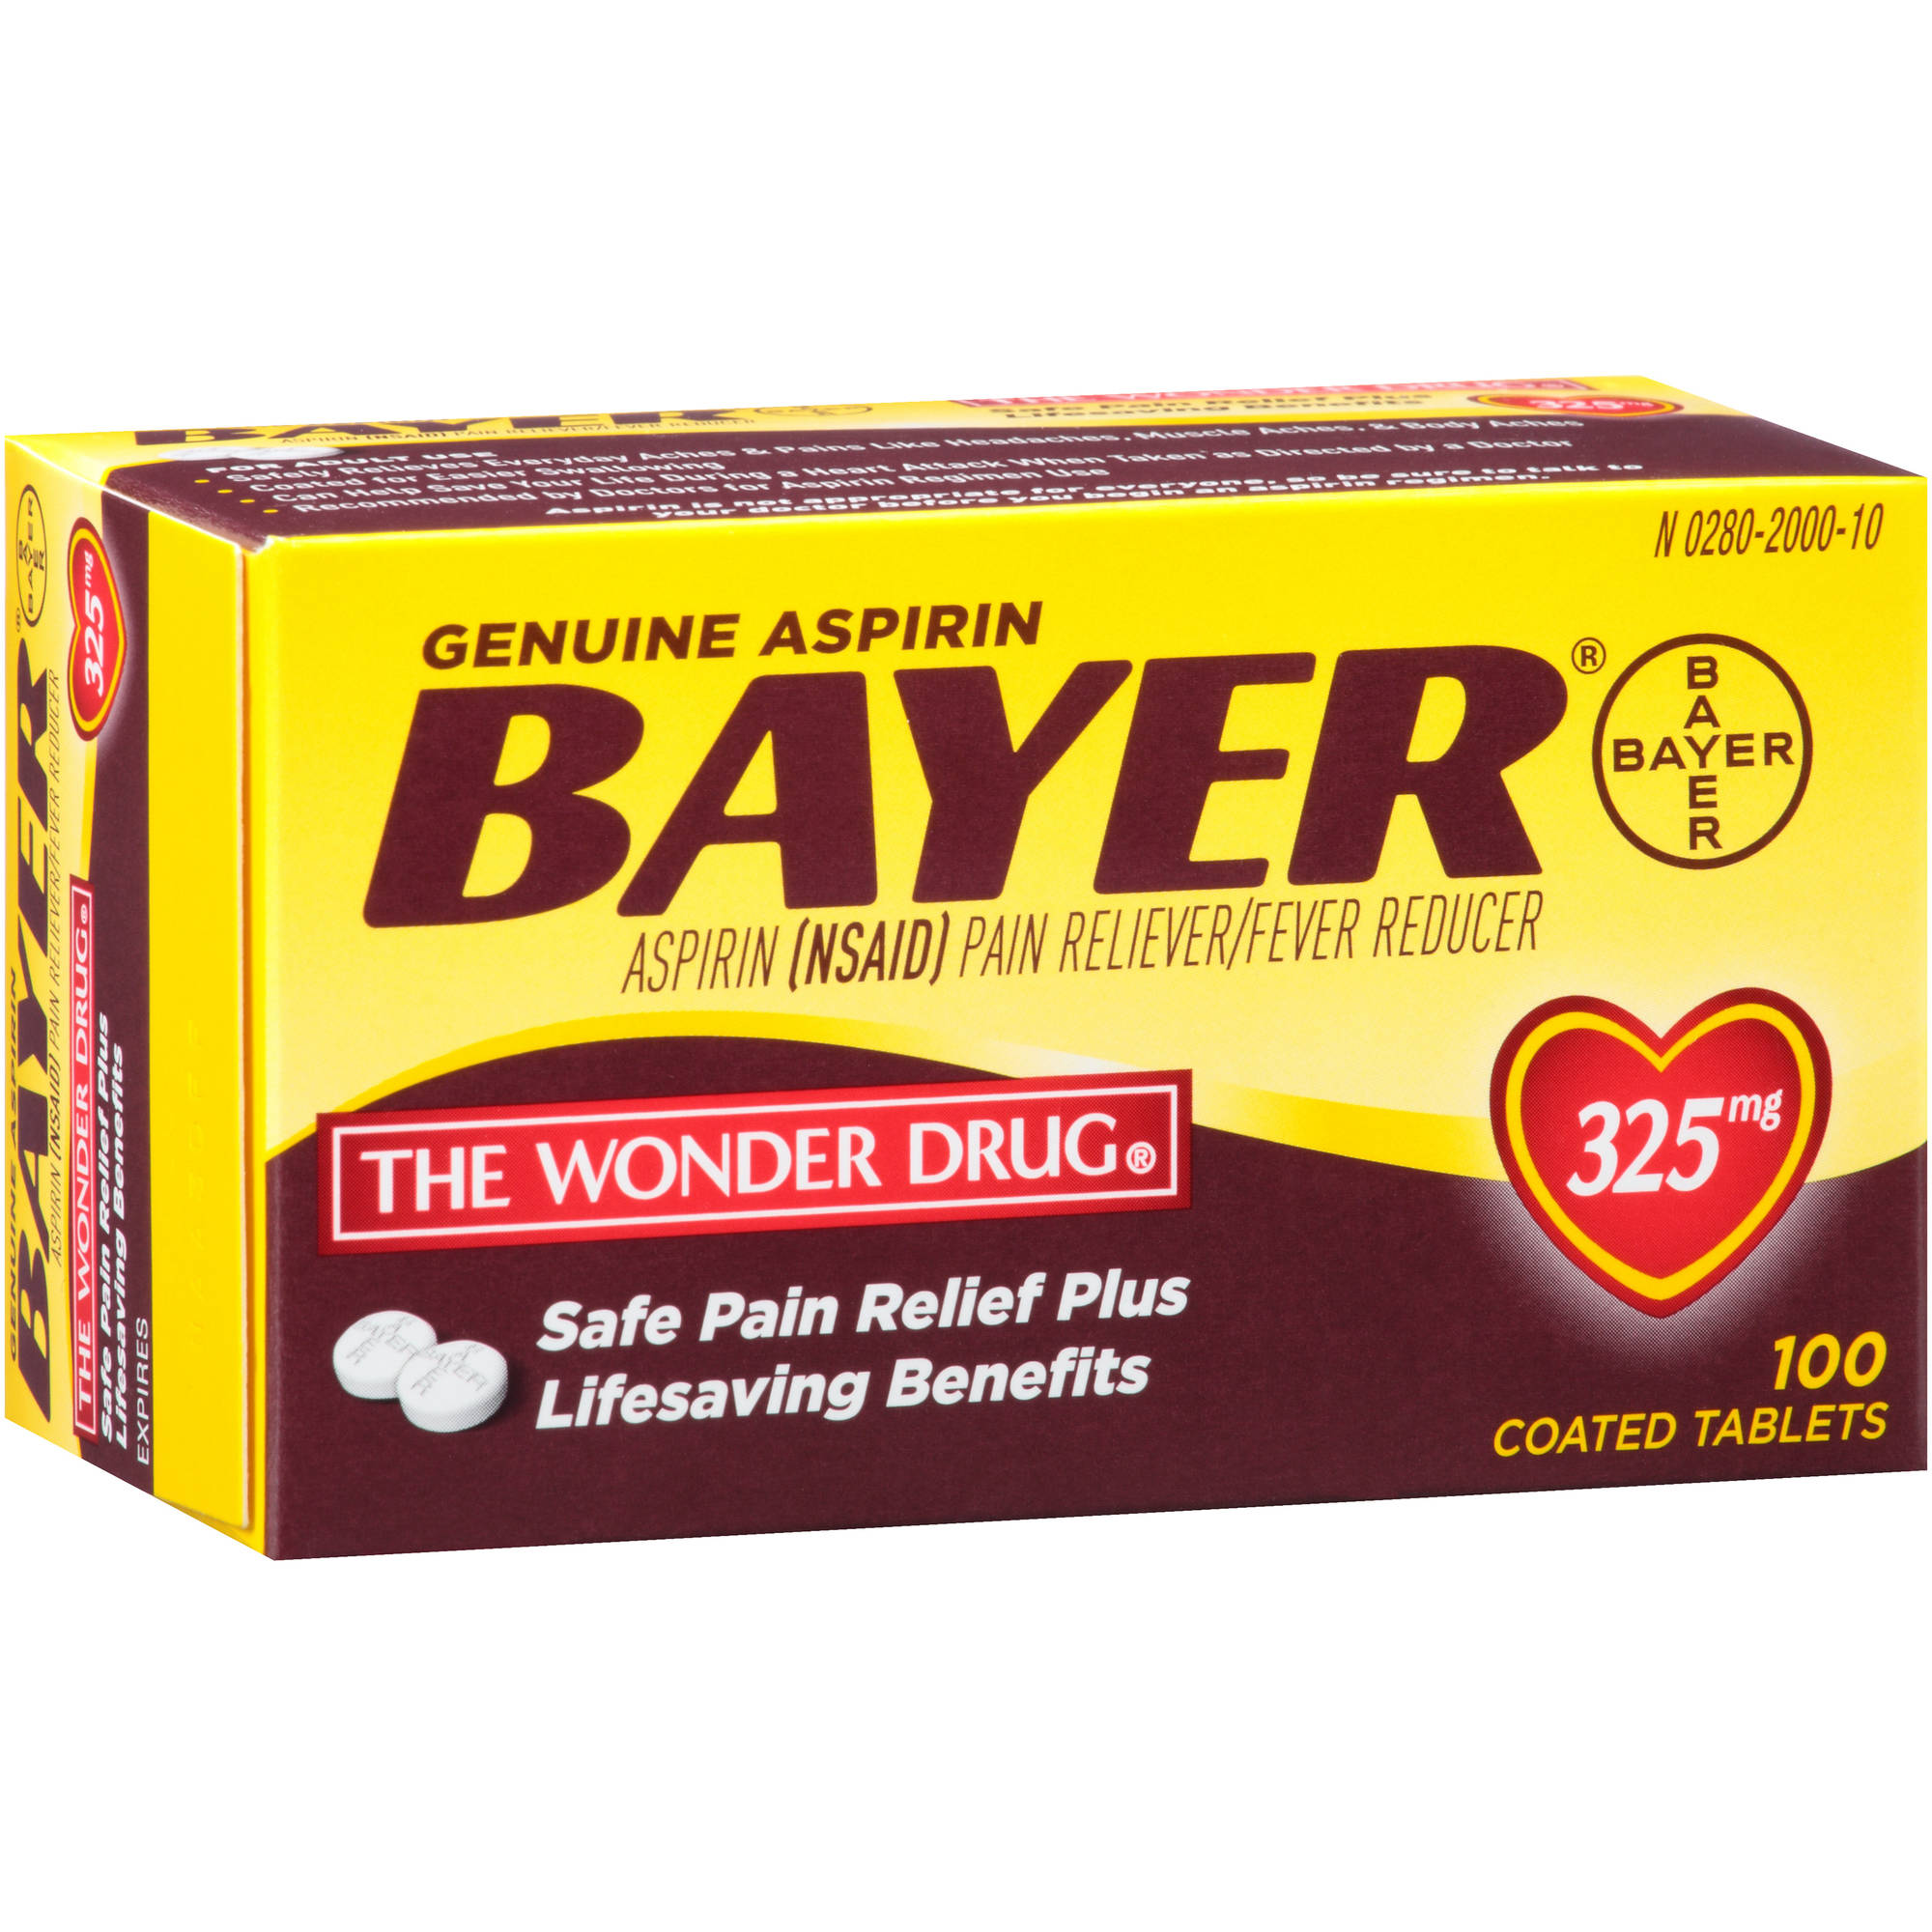 Genuine Bayer Aspirin Coated Tablets, 325mg, 100 count